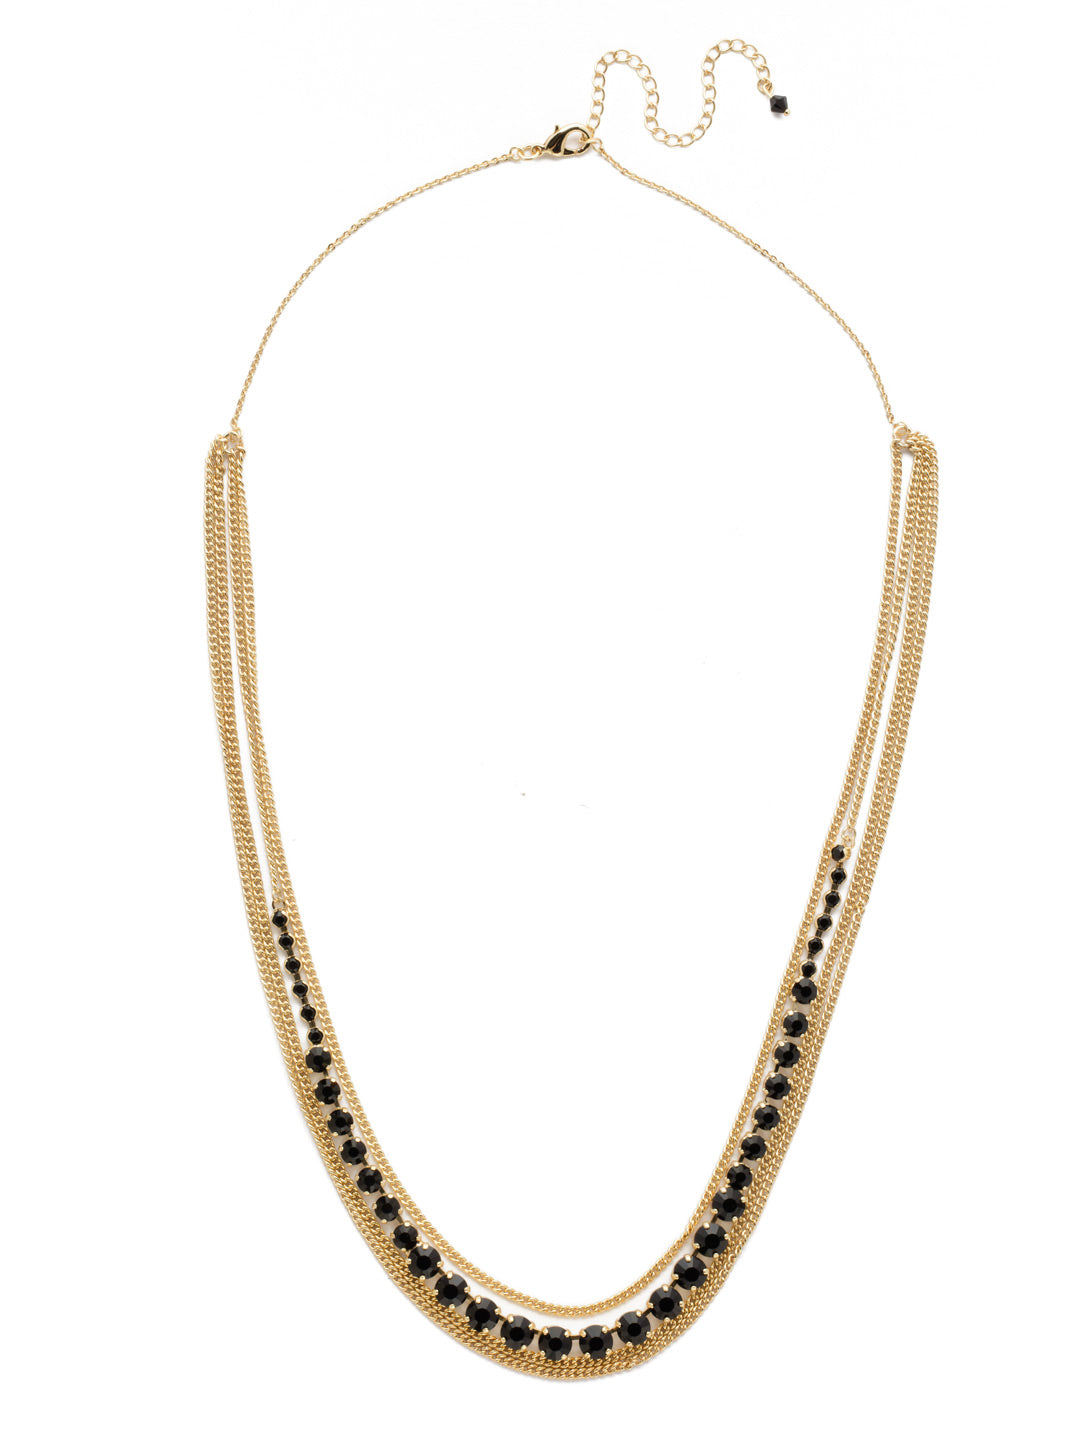 Layer It On Multi-Strand Layered Necklace - NCR73BGJET